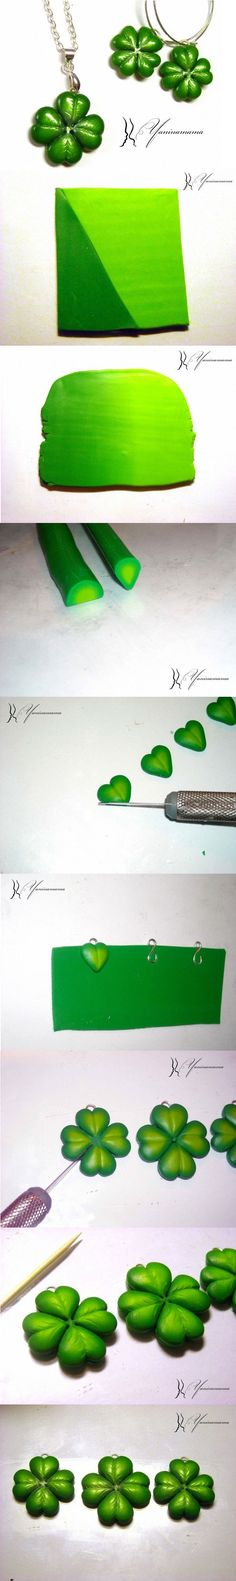 Cute Four Leaf Clovers Using Skinner Blend Canes by ???